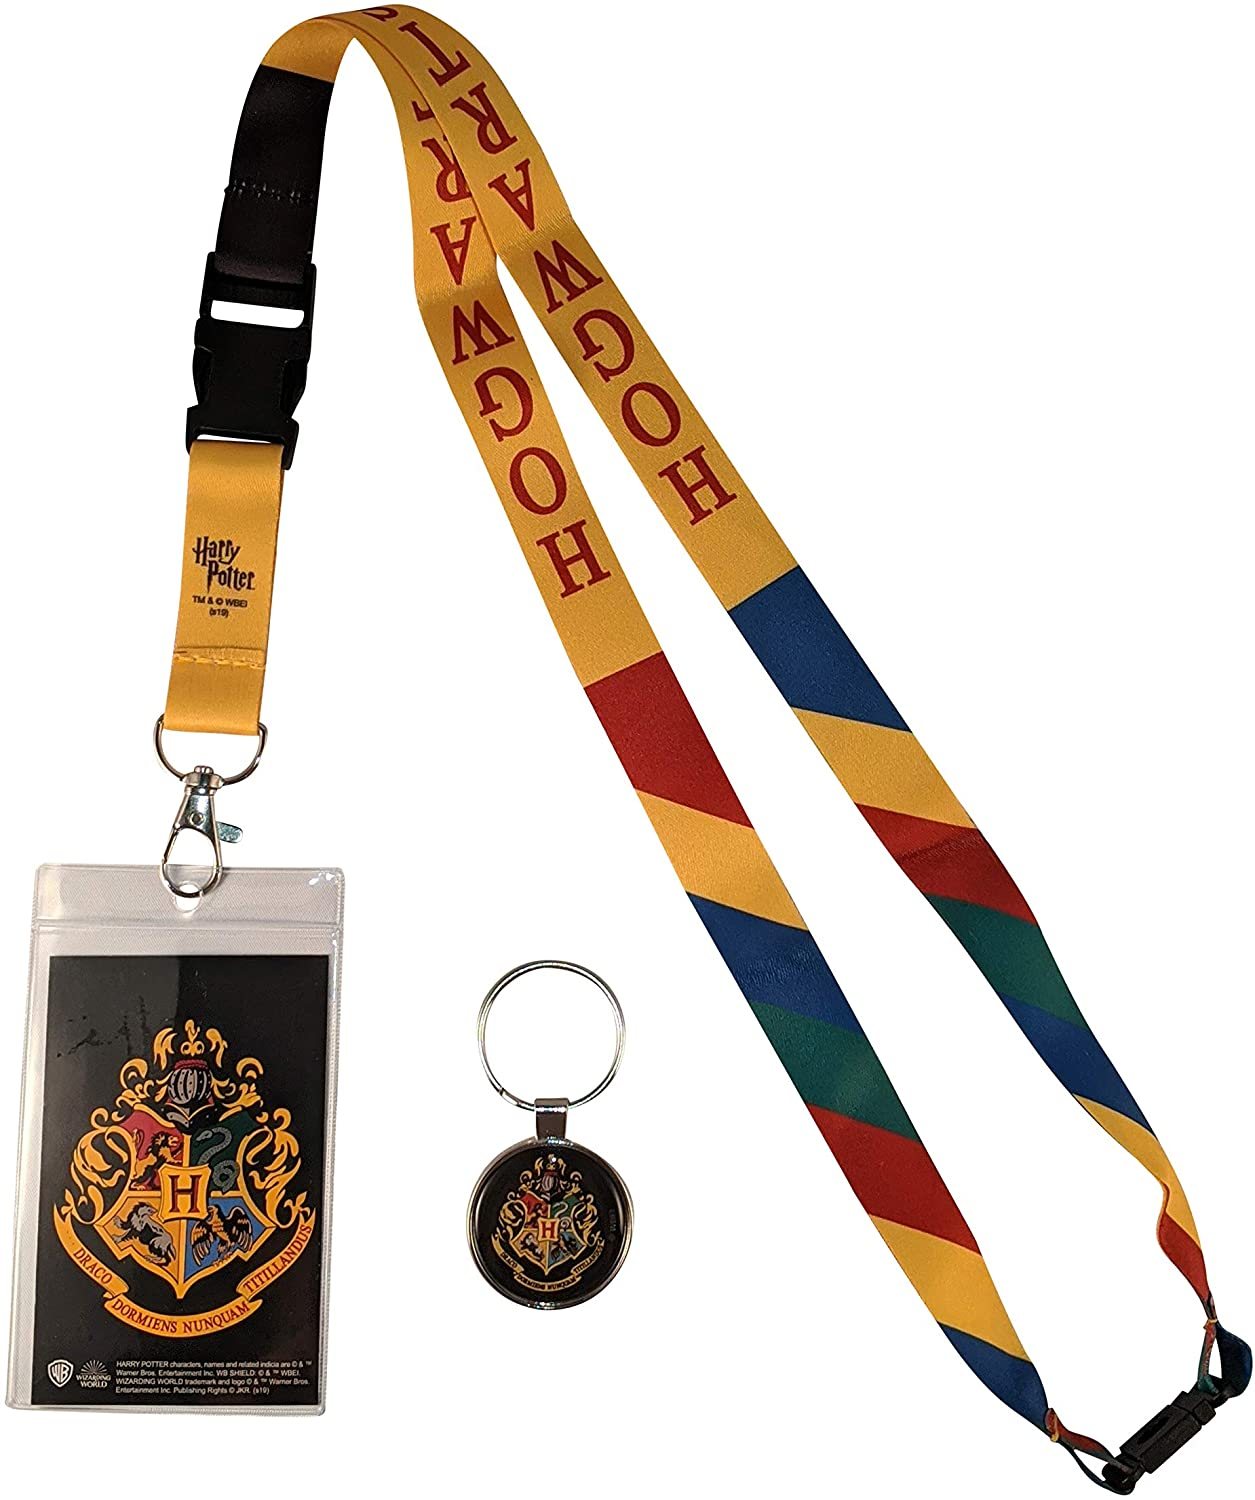 Harry Potter Hogwarts House ID Badge Holder Lanyard & Keychain Bundle (Hogwarts)